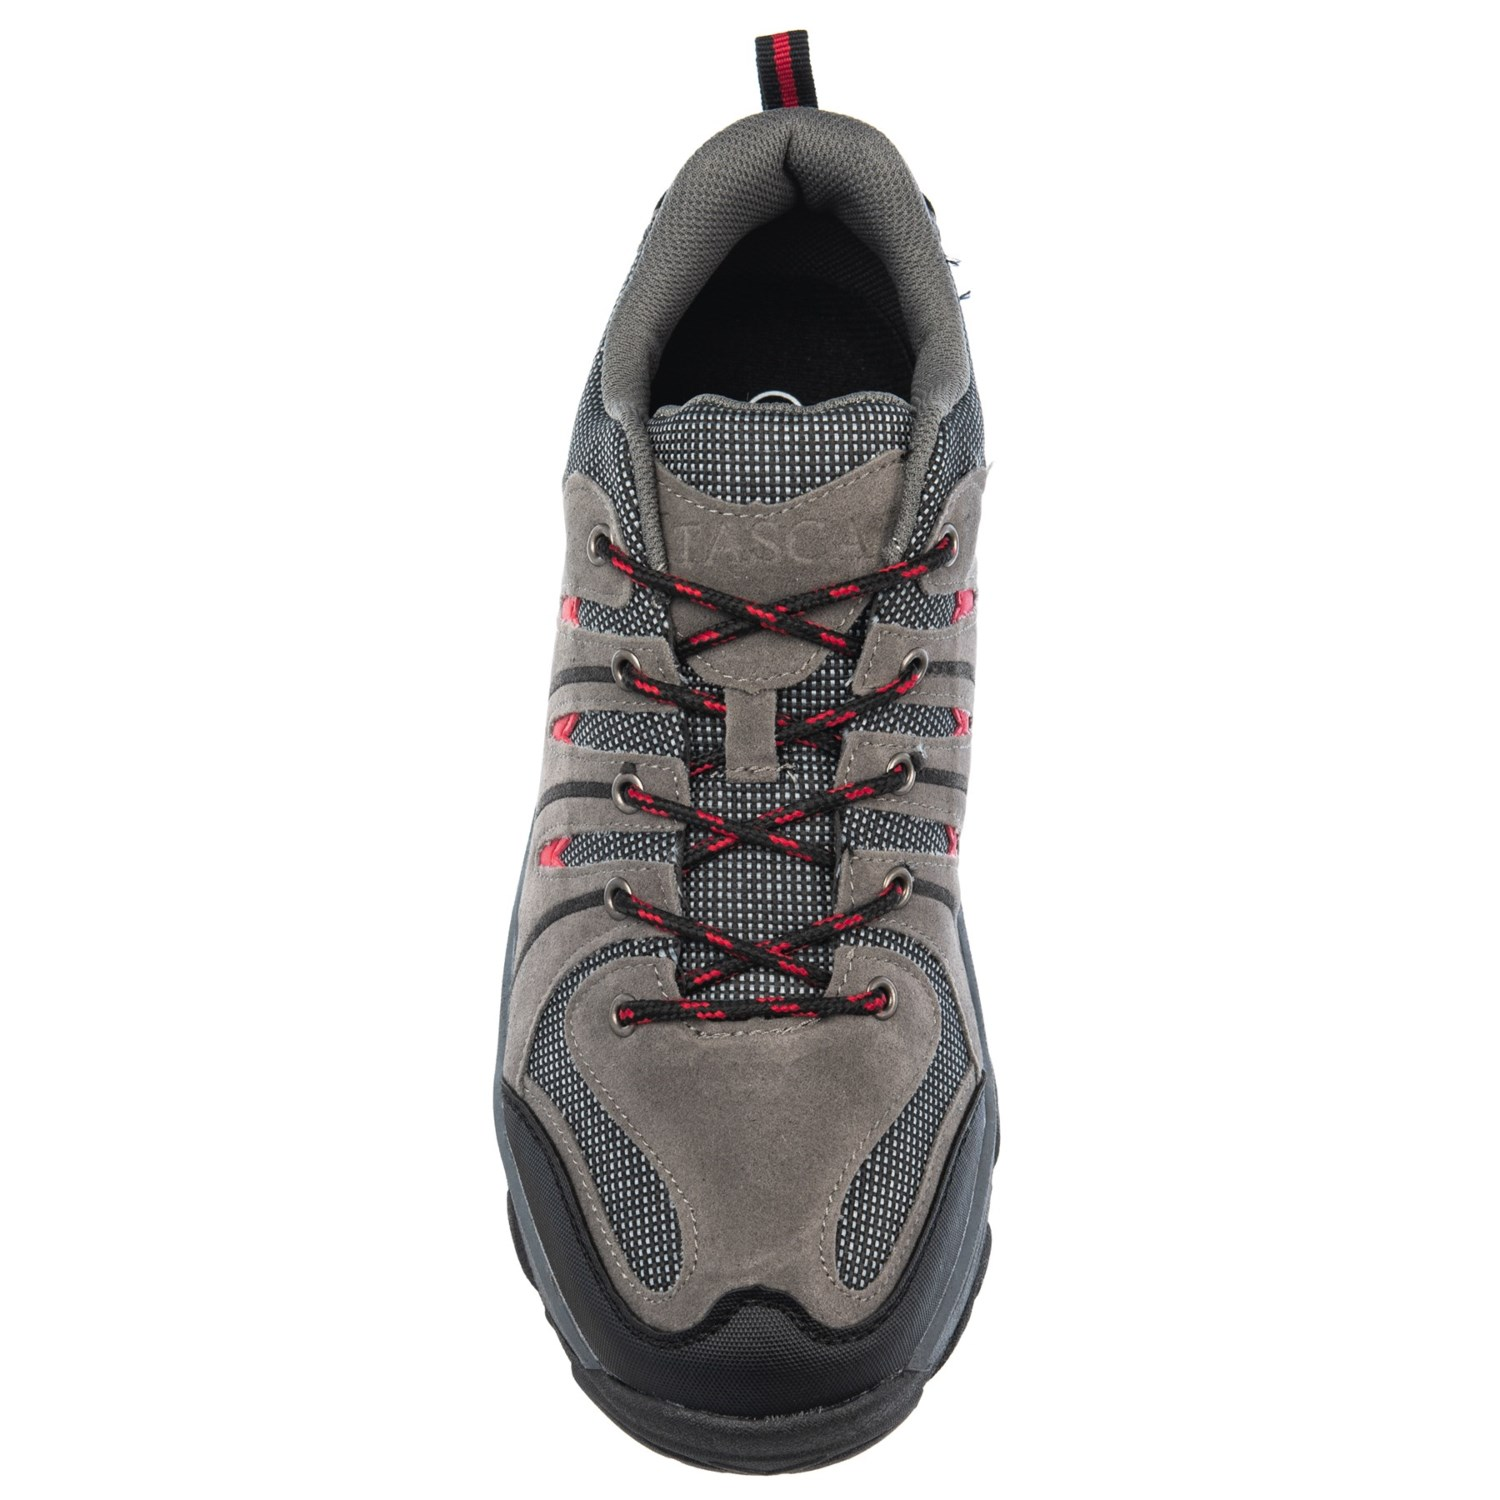 a2f1734a9a5 Itasca Highliner Hiking Shoes (For Men)